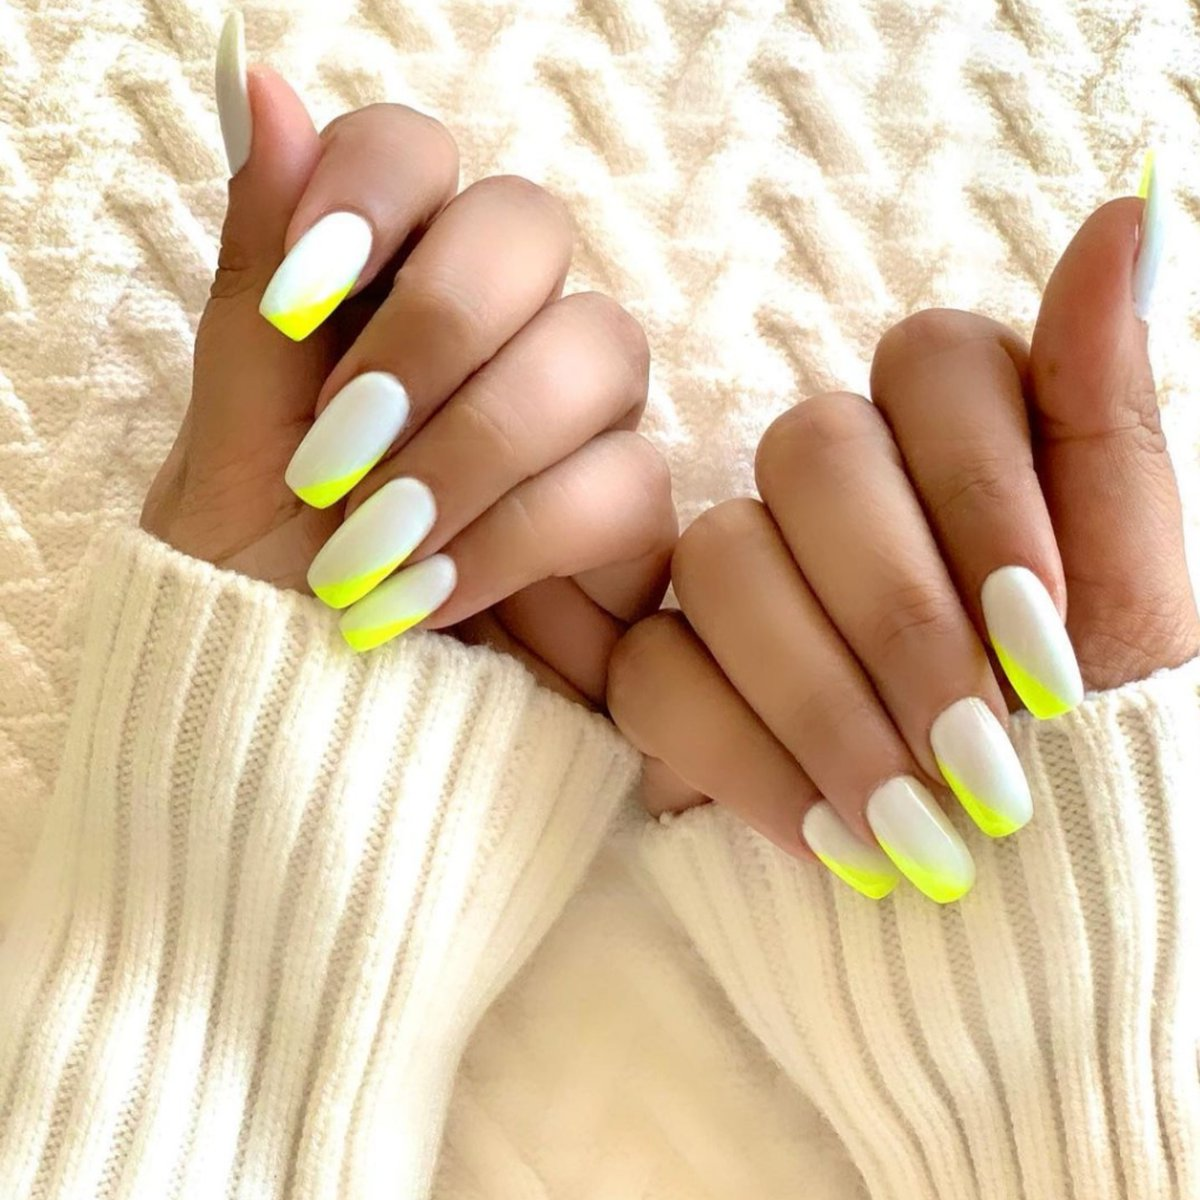 Did you check out @ParineetiChopra's latest nail paint 🎨 picture. This soft colour with a hint of neon has winter inspiration written all over it 🔥💯👍🌸